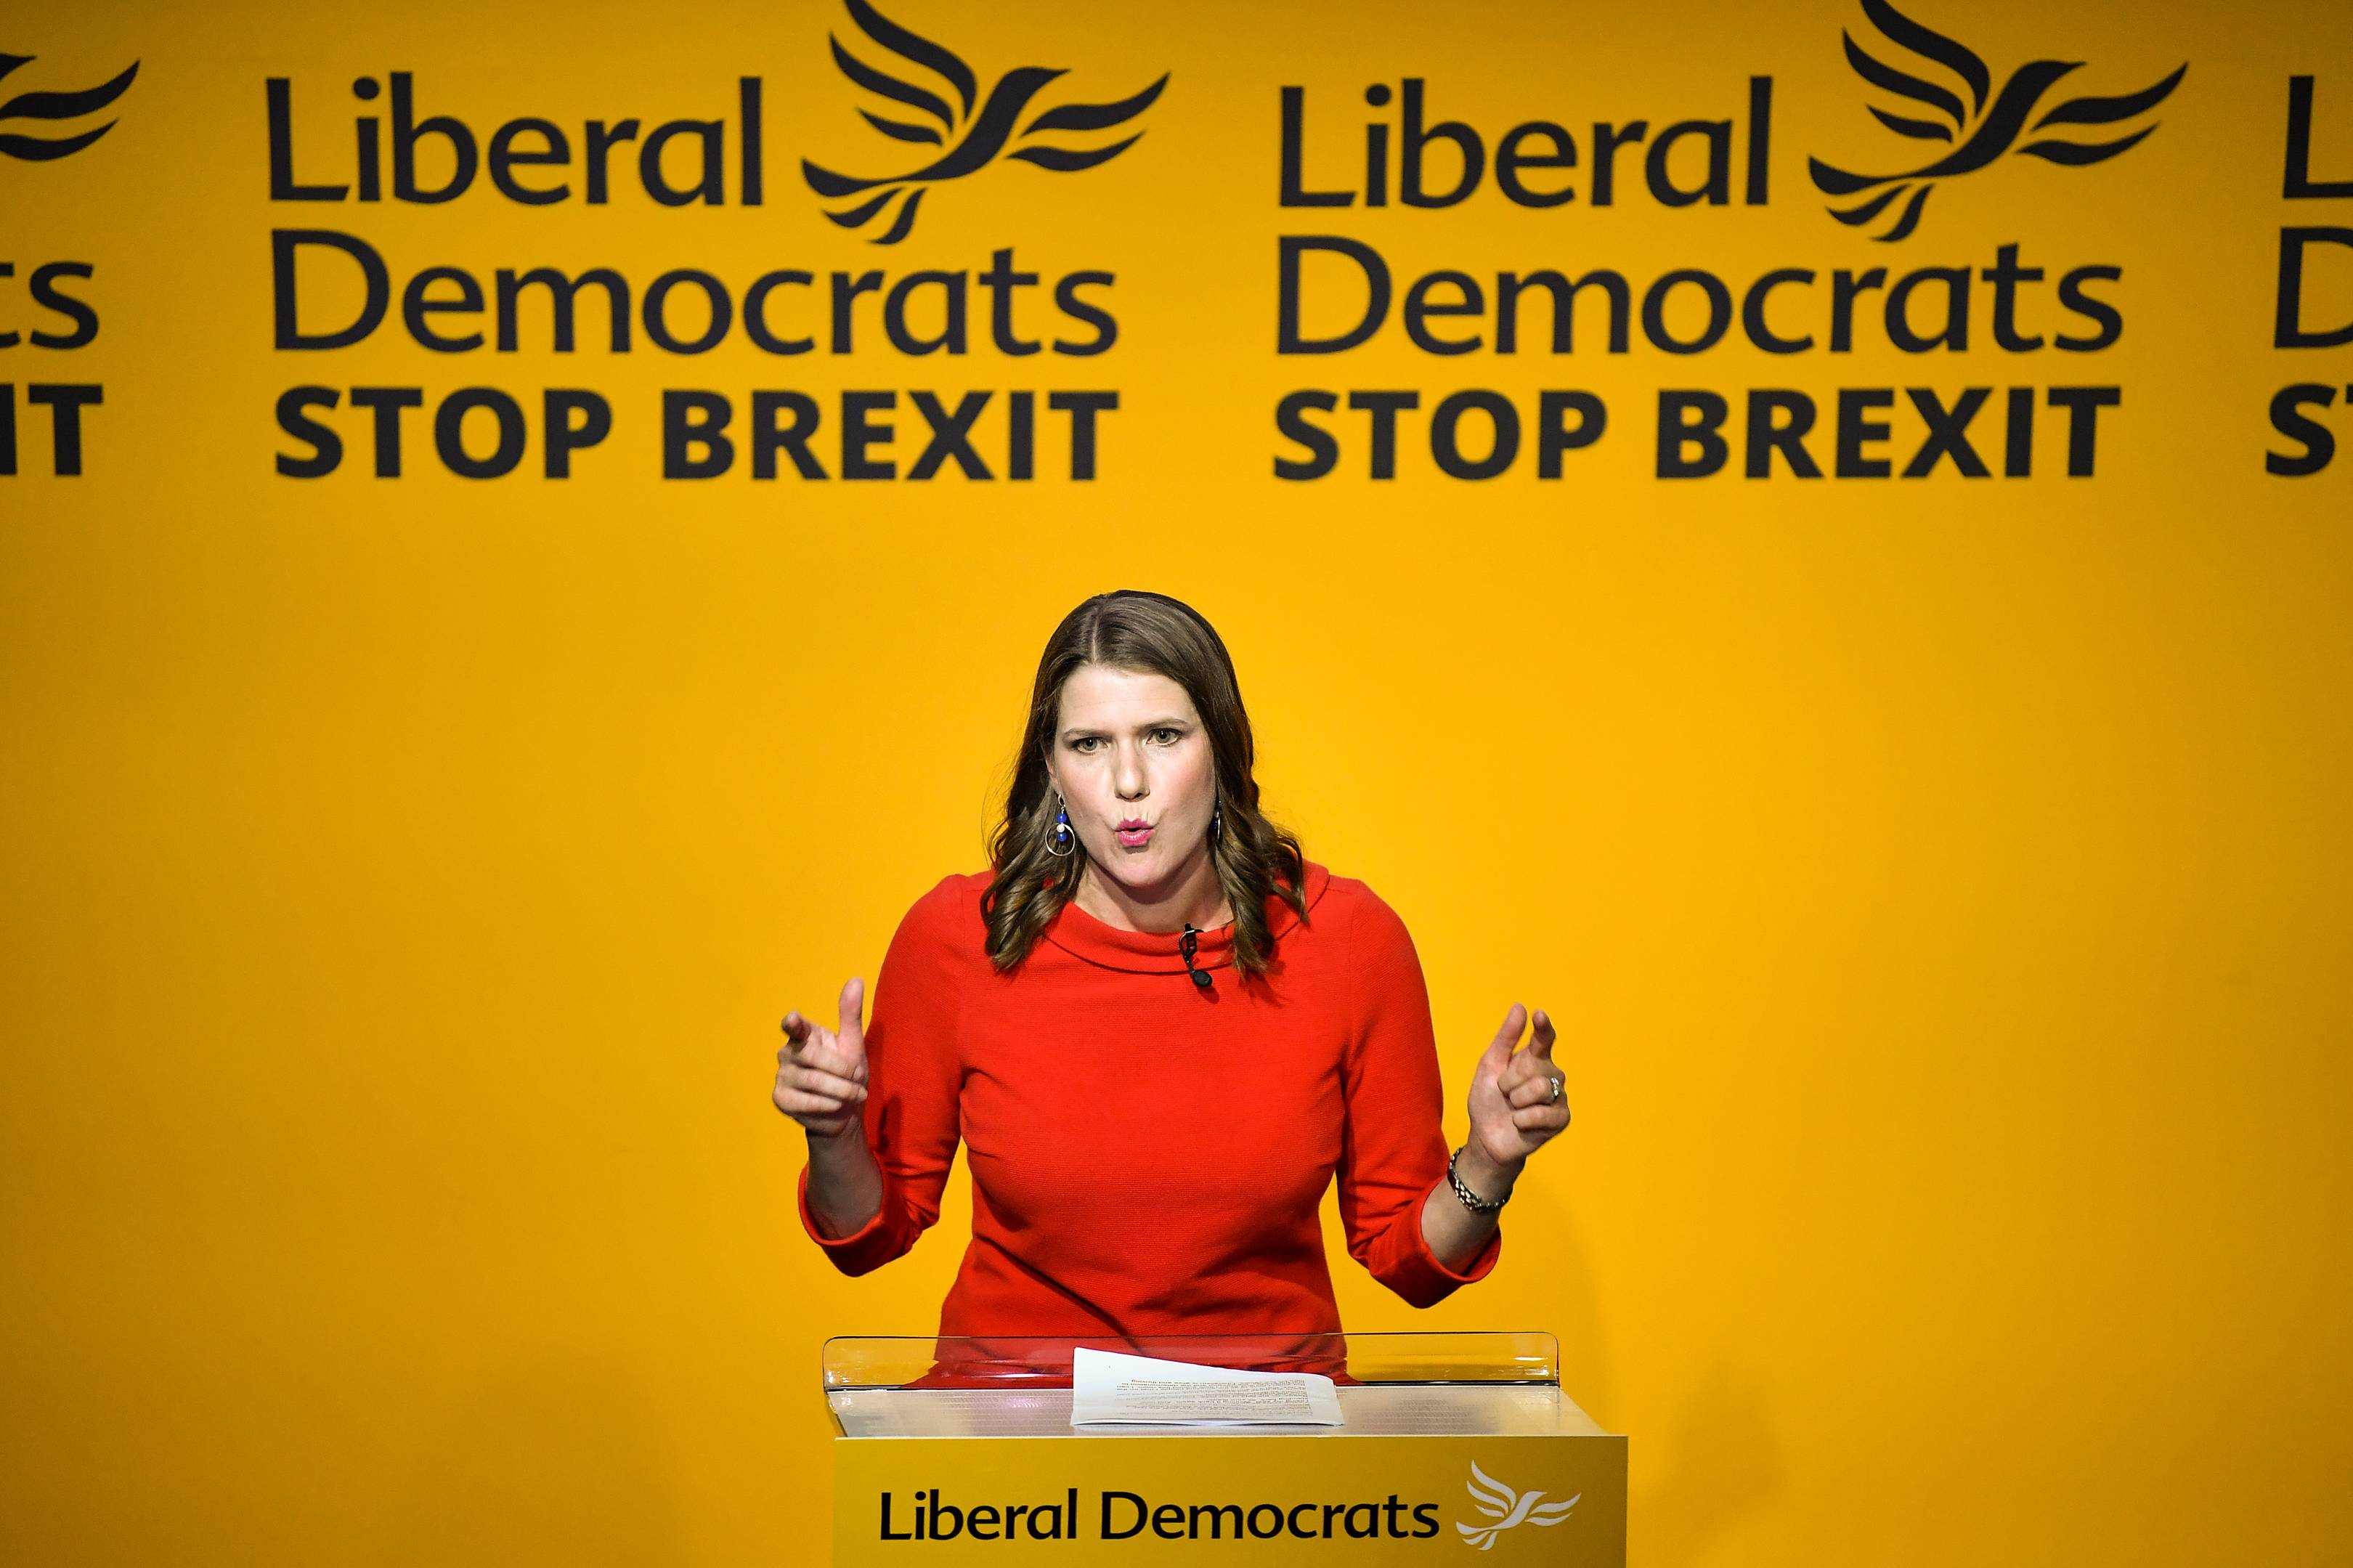 The Lib Dems are still winning the general election fight on Facebook